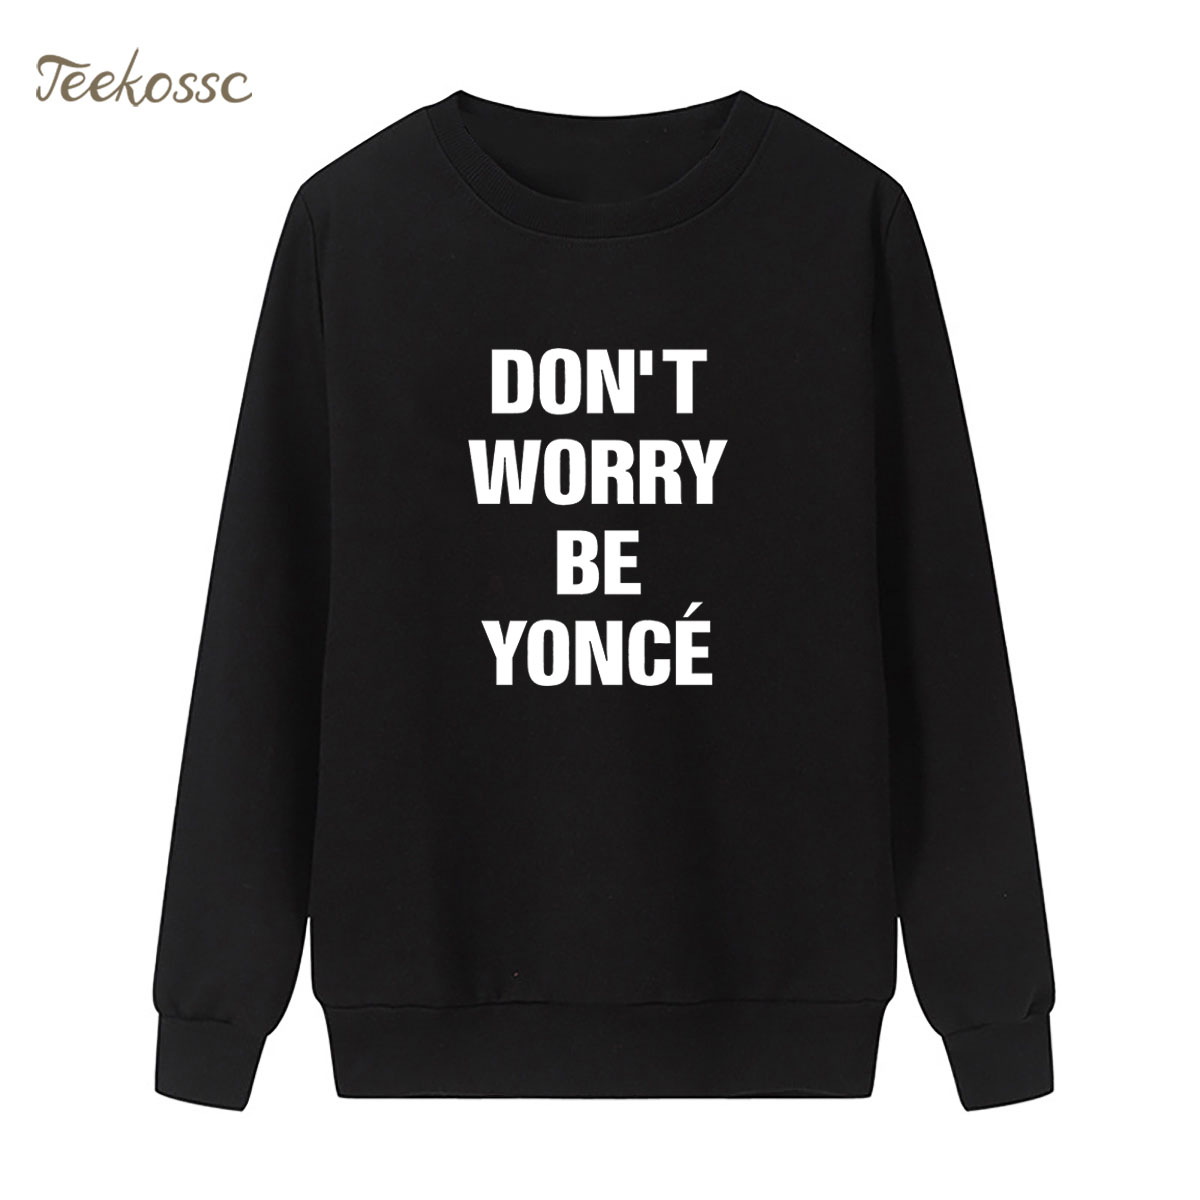 New Arrival Don't Worry Be Yonce Sweatshirt Letter Hoodie Winter Autumn Women Lasdies Pullover Loose Fleece Funny Sportswear